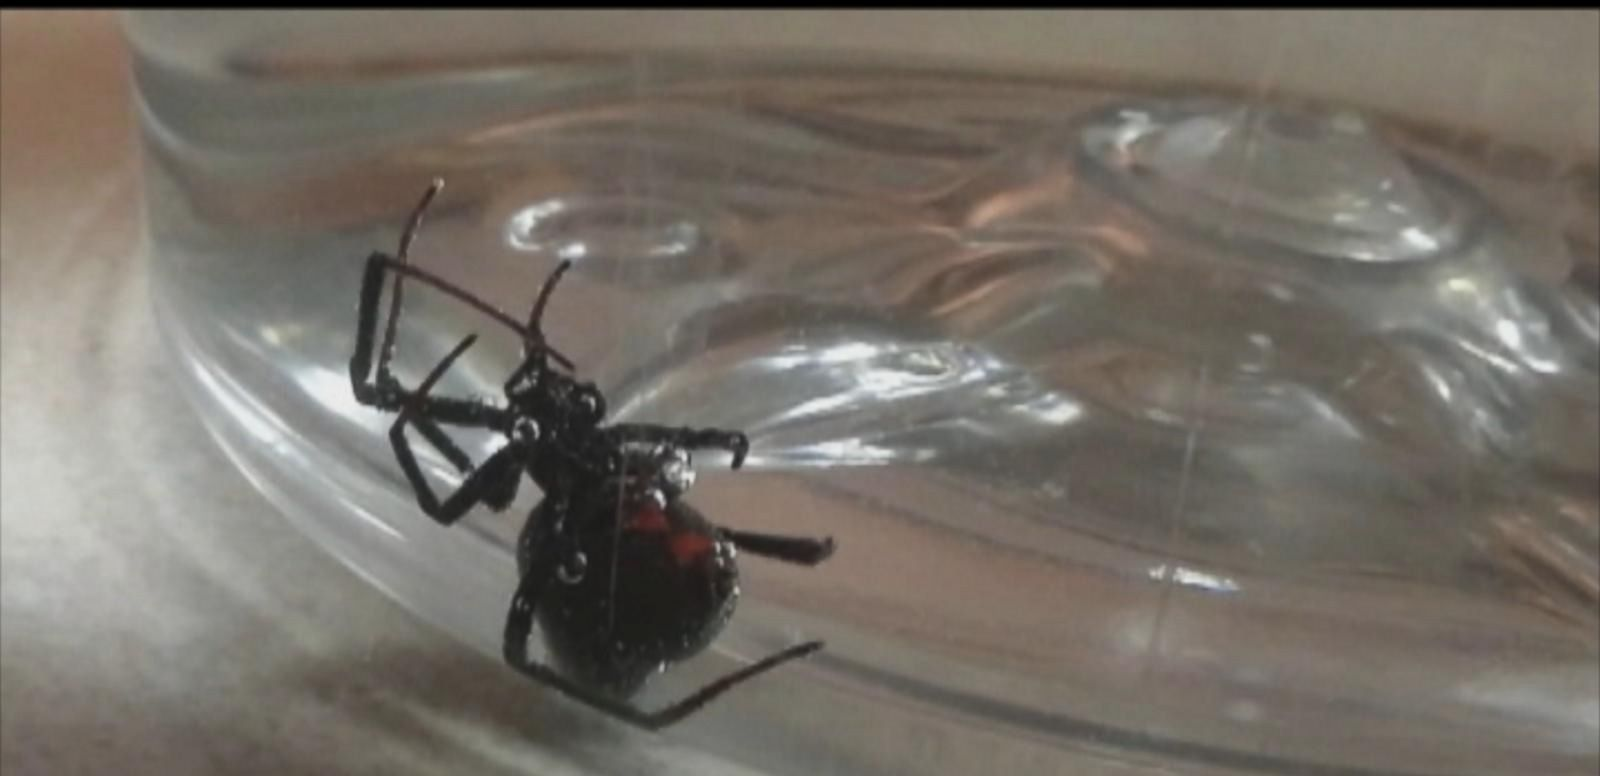 VIDEO: Apparent Black Widow Spider Found Amongst Michigan Woman's Grapes